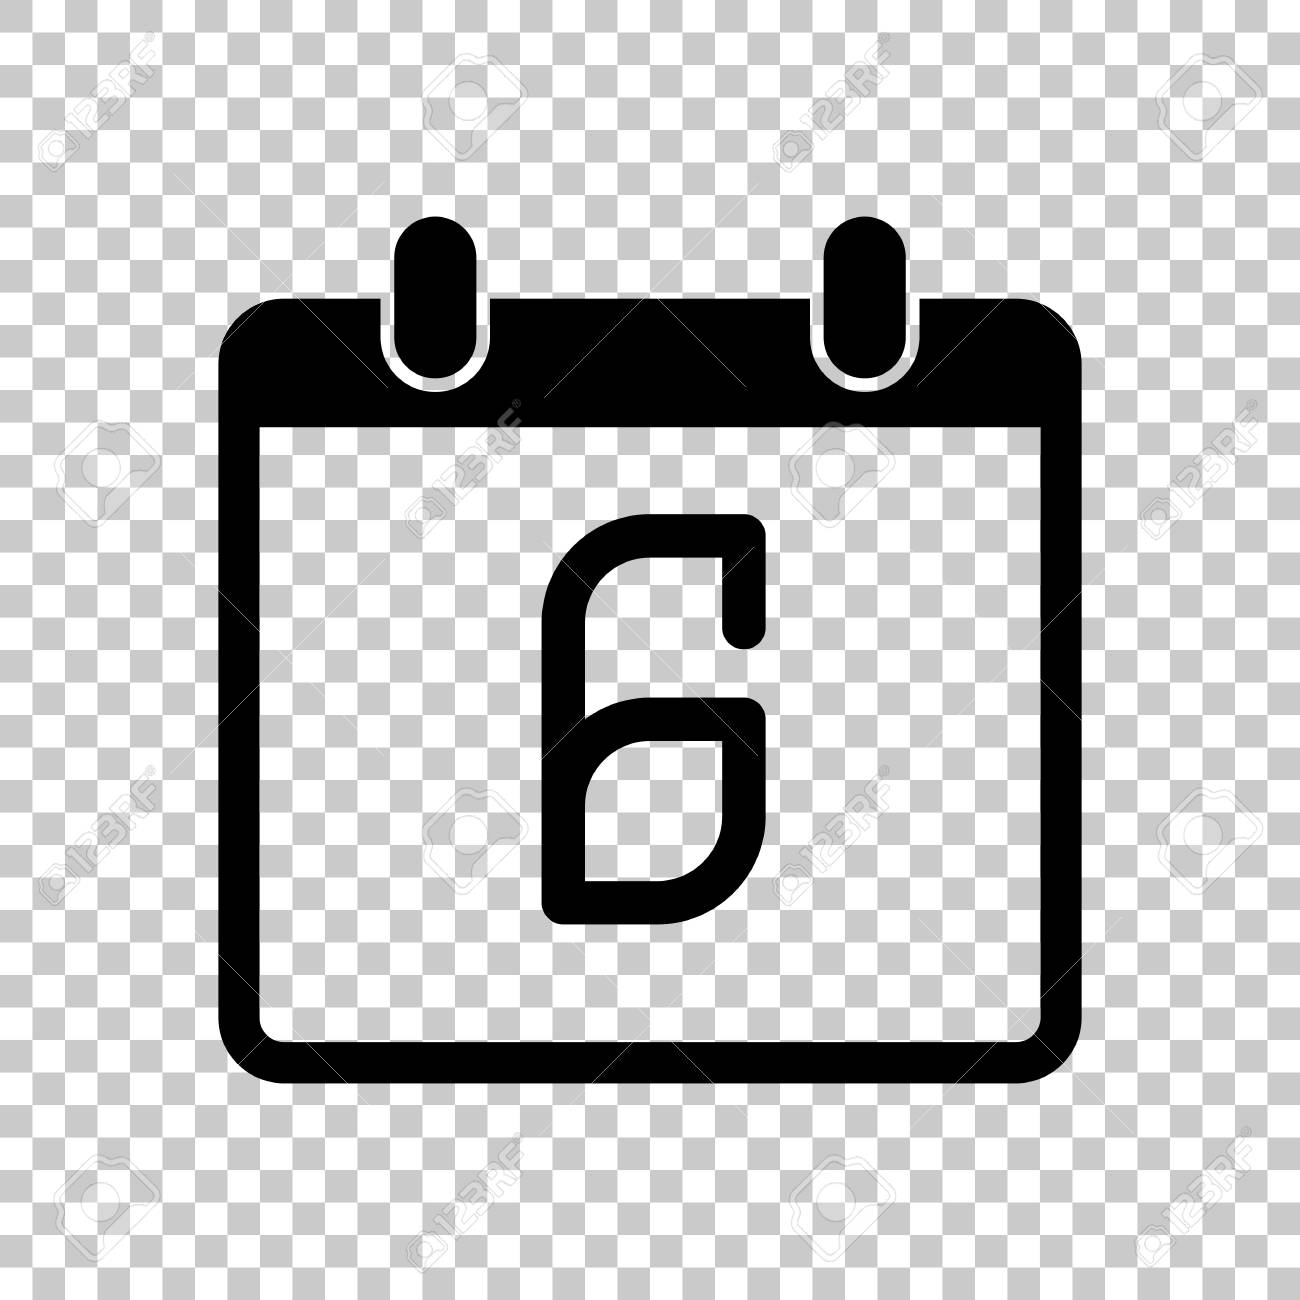 Calendar Days Icon.Calendar With 6 Day Simple Icon On Transparent Background